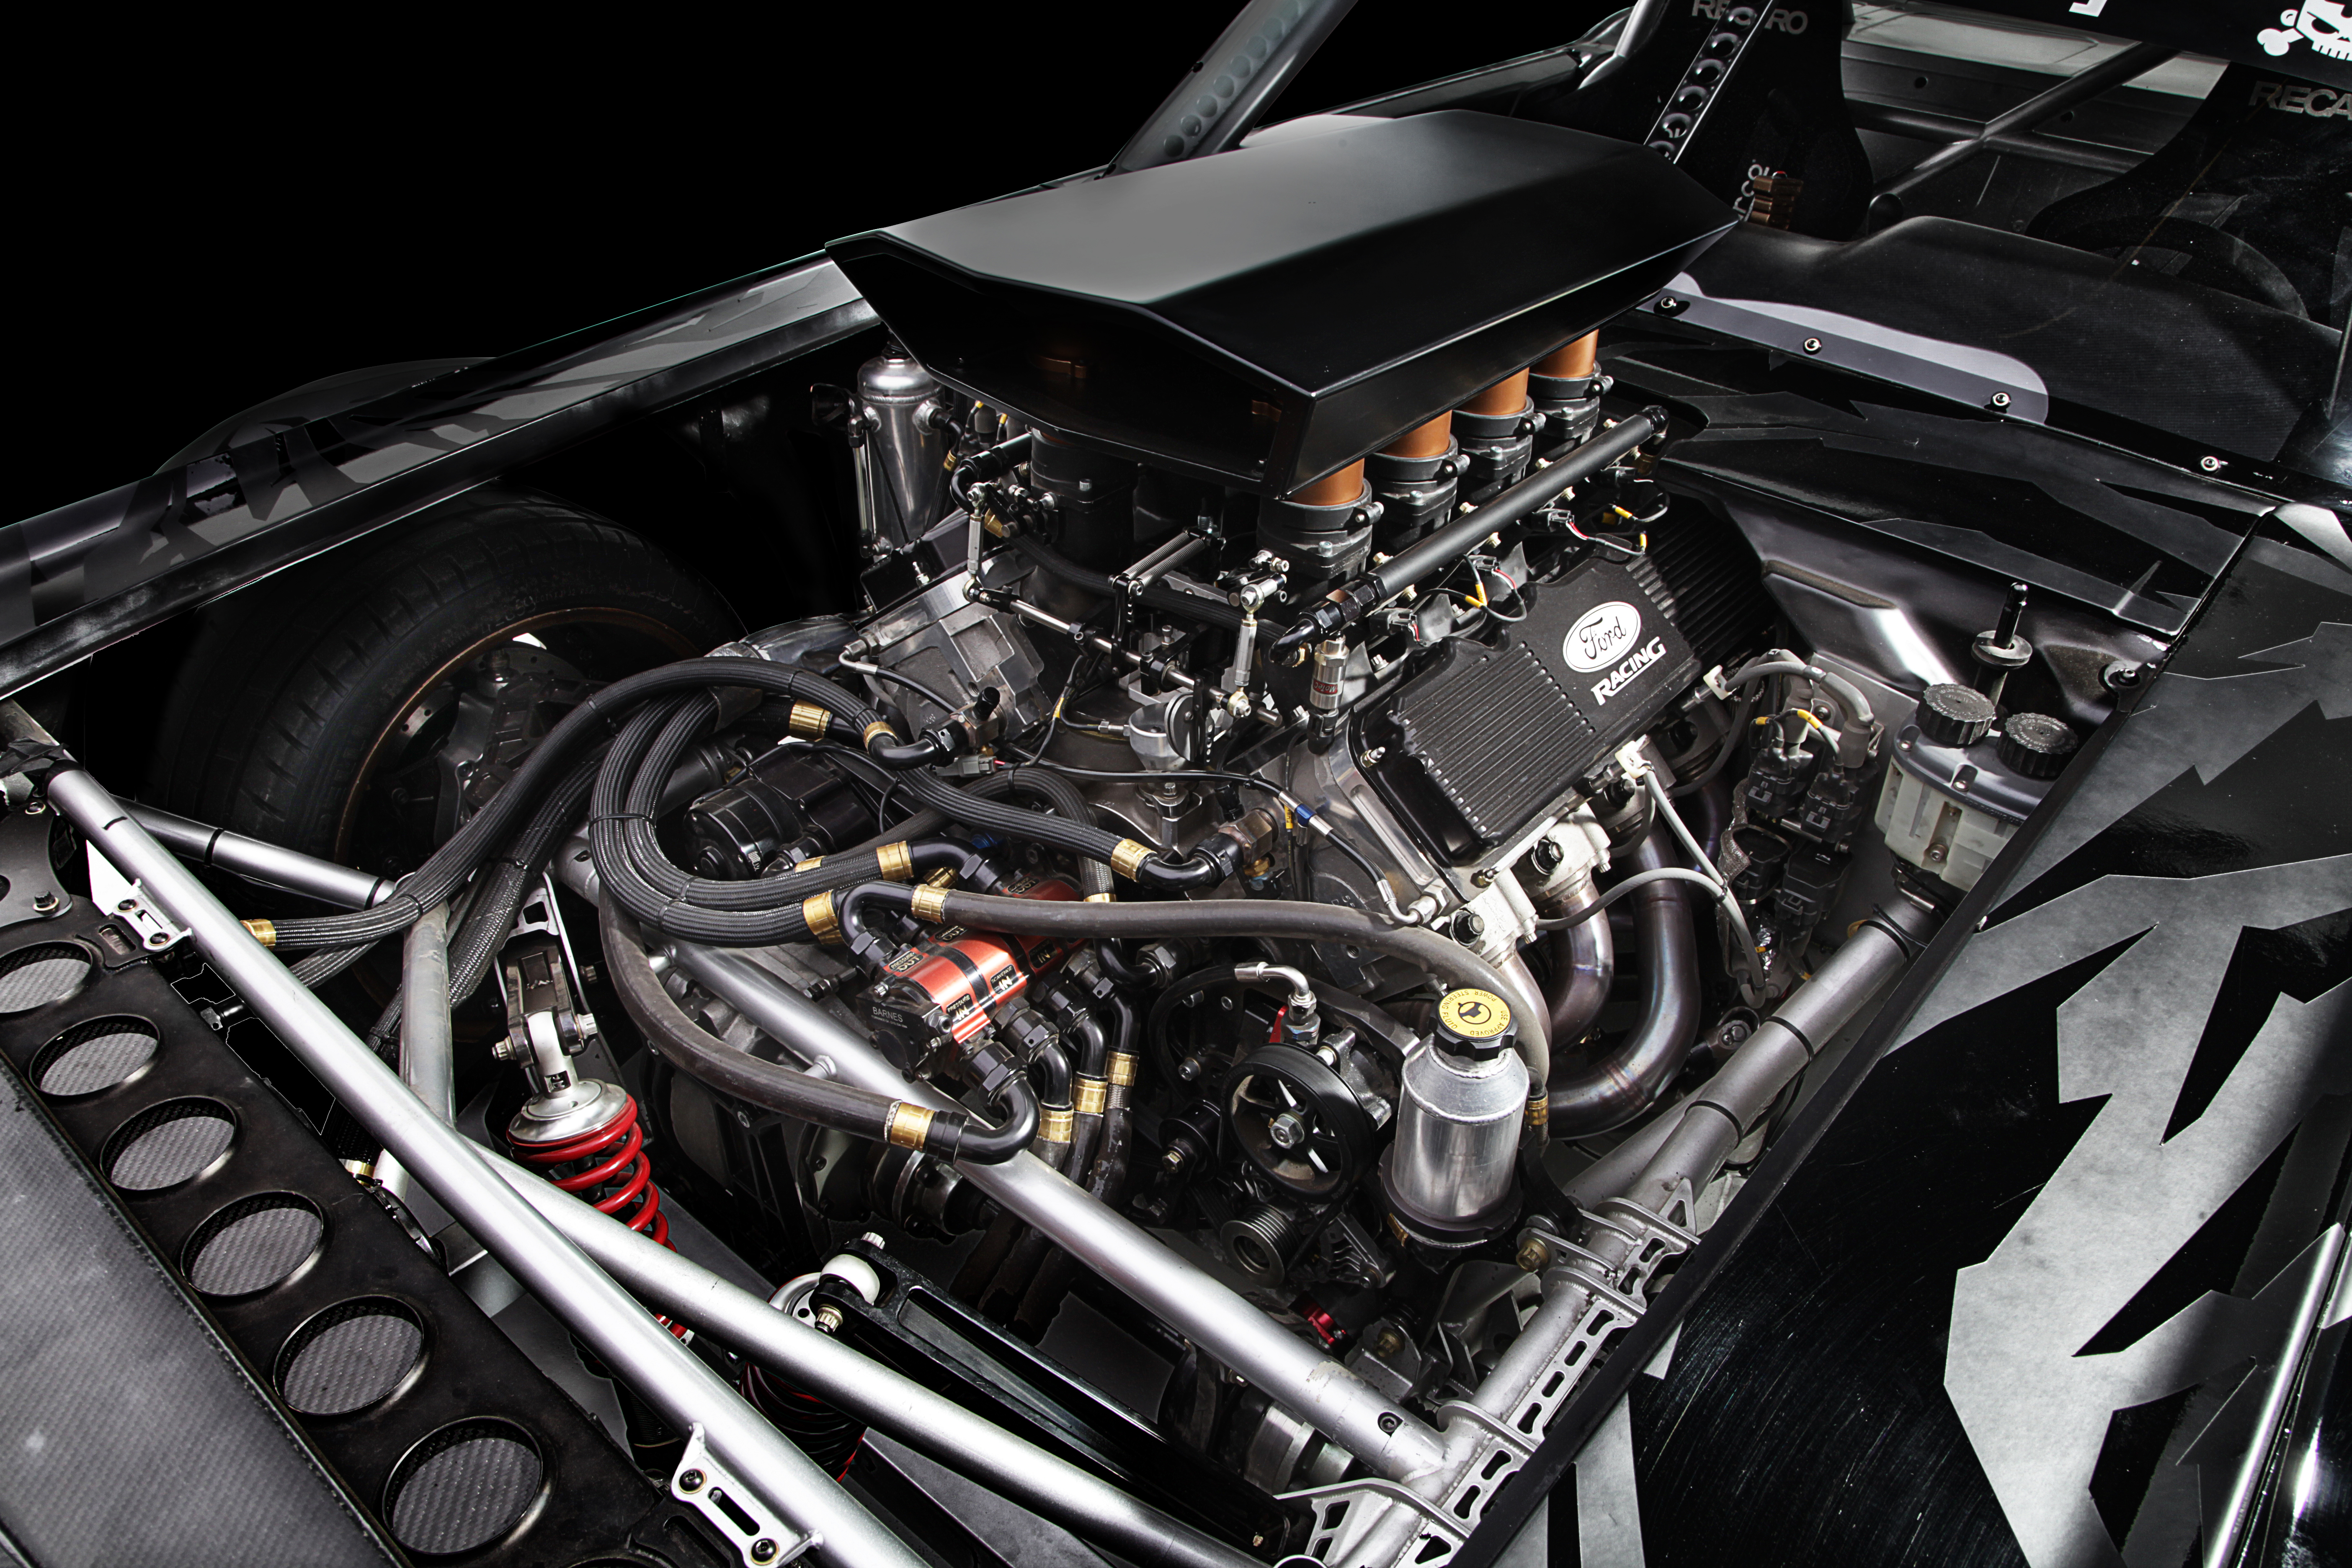 When Block chose to build an all-wheel-drive Mustang a Roush Yates built 410ci Ford small-block topped with Roush Yates D3 cylinder heads was used instead of a turbo four-banger.